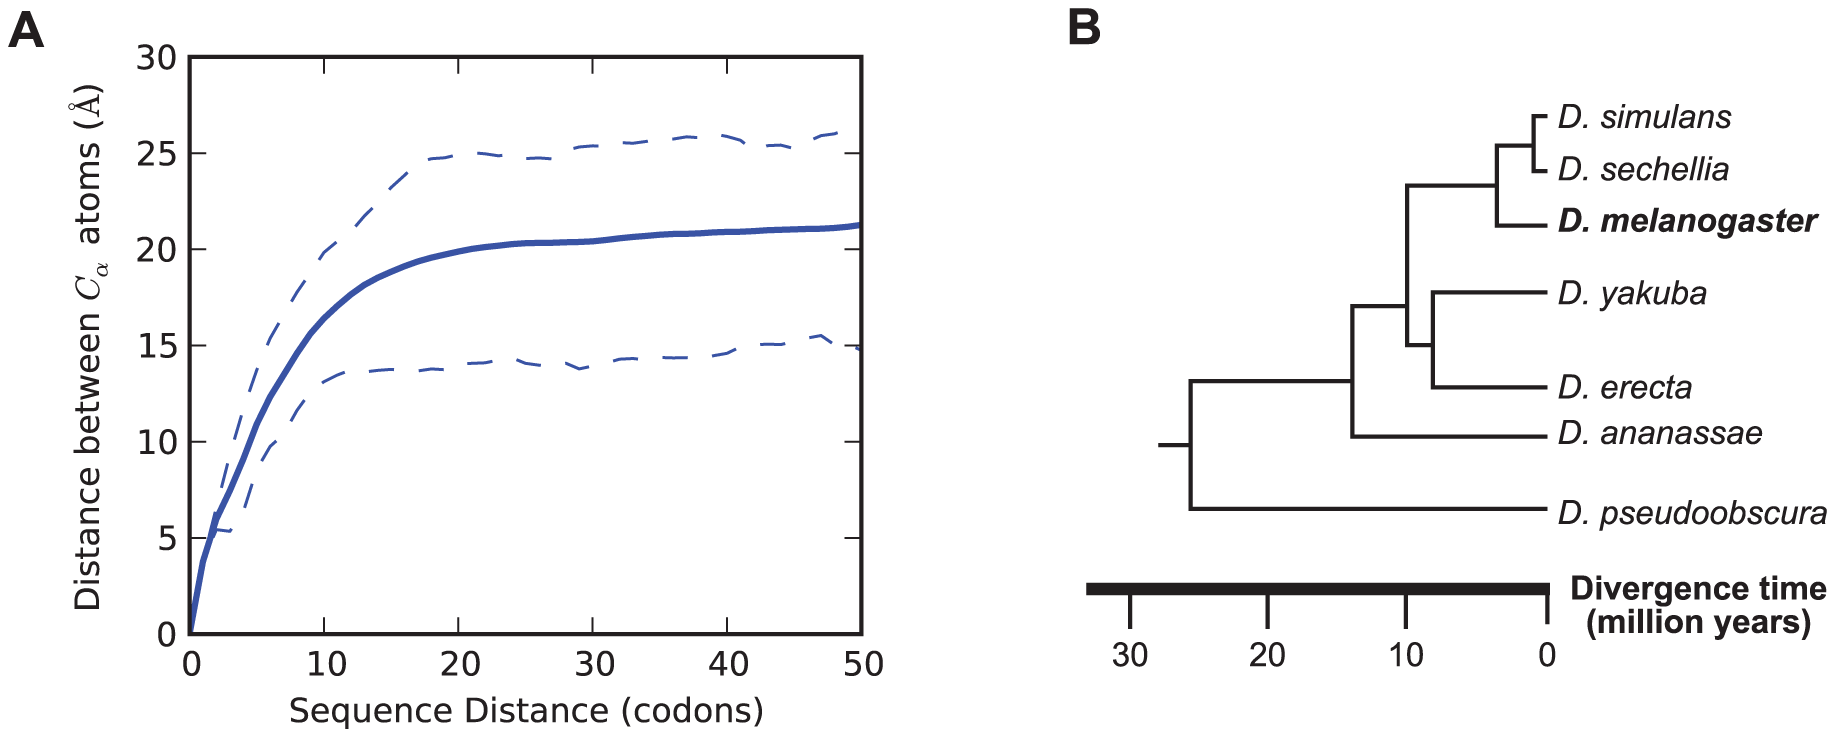 Structural distance as a function of sequence distance and Drosophilid phylogeny.